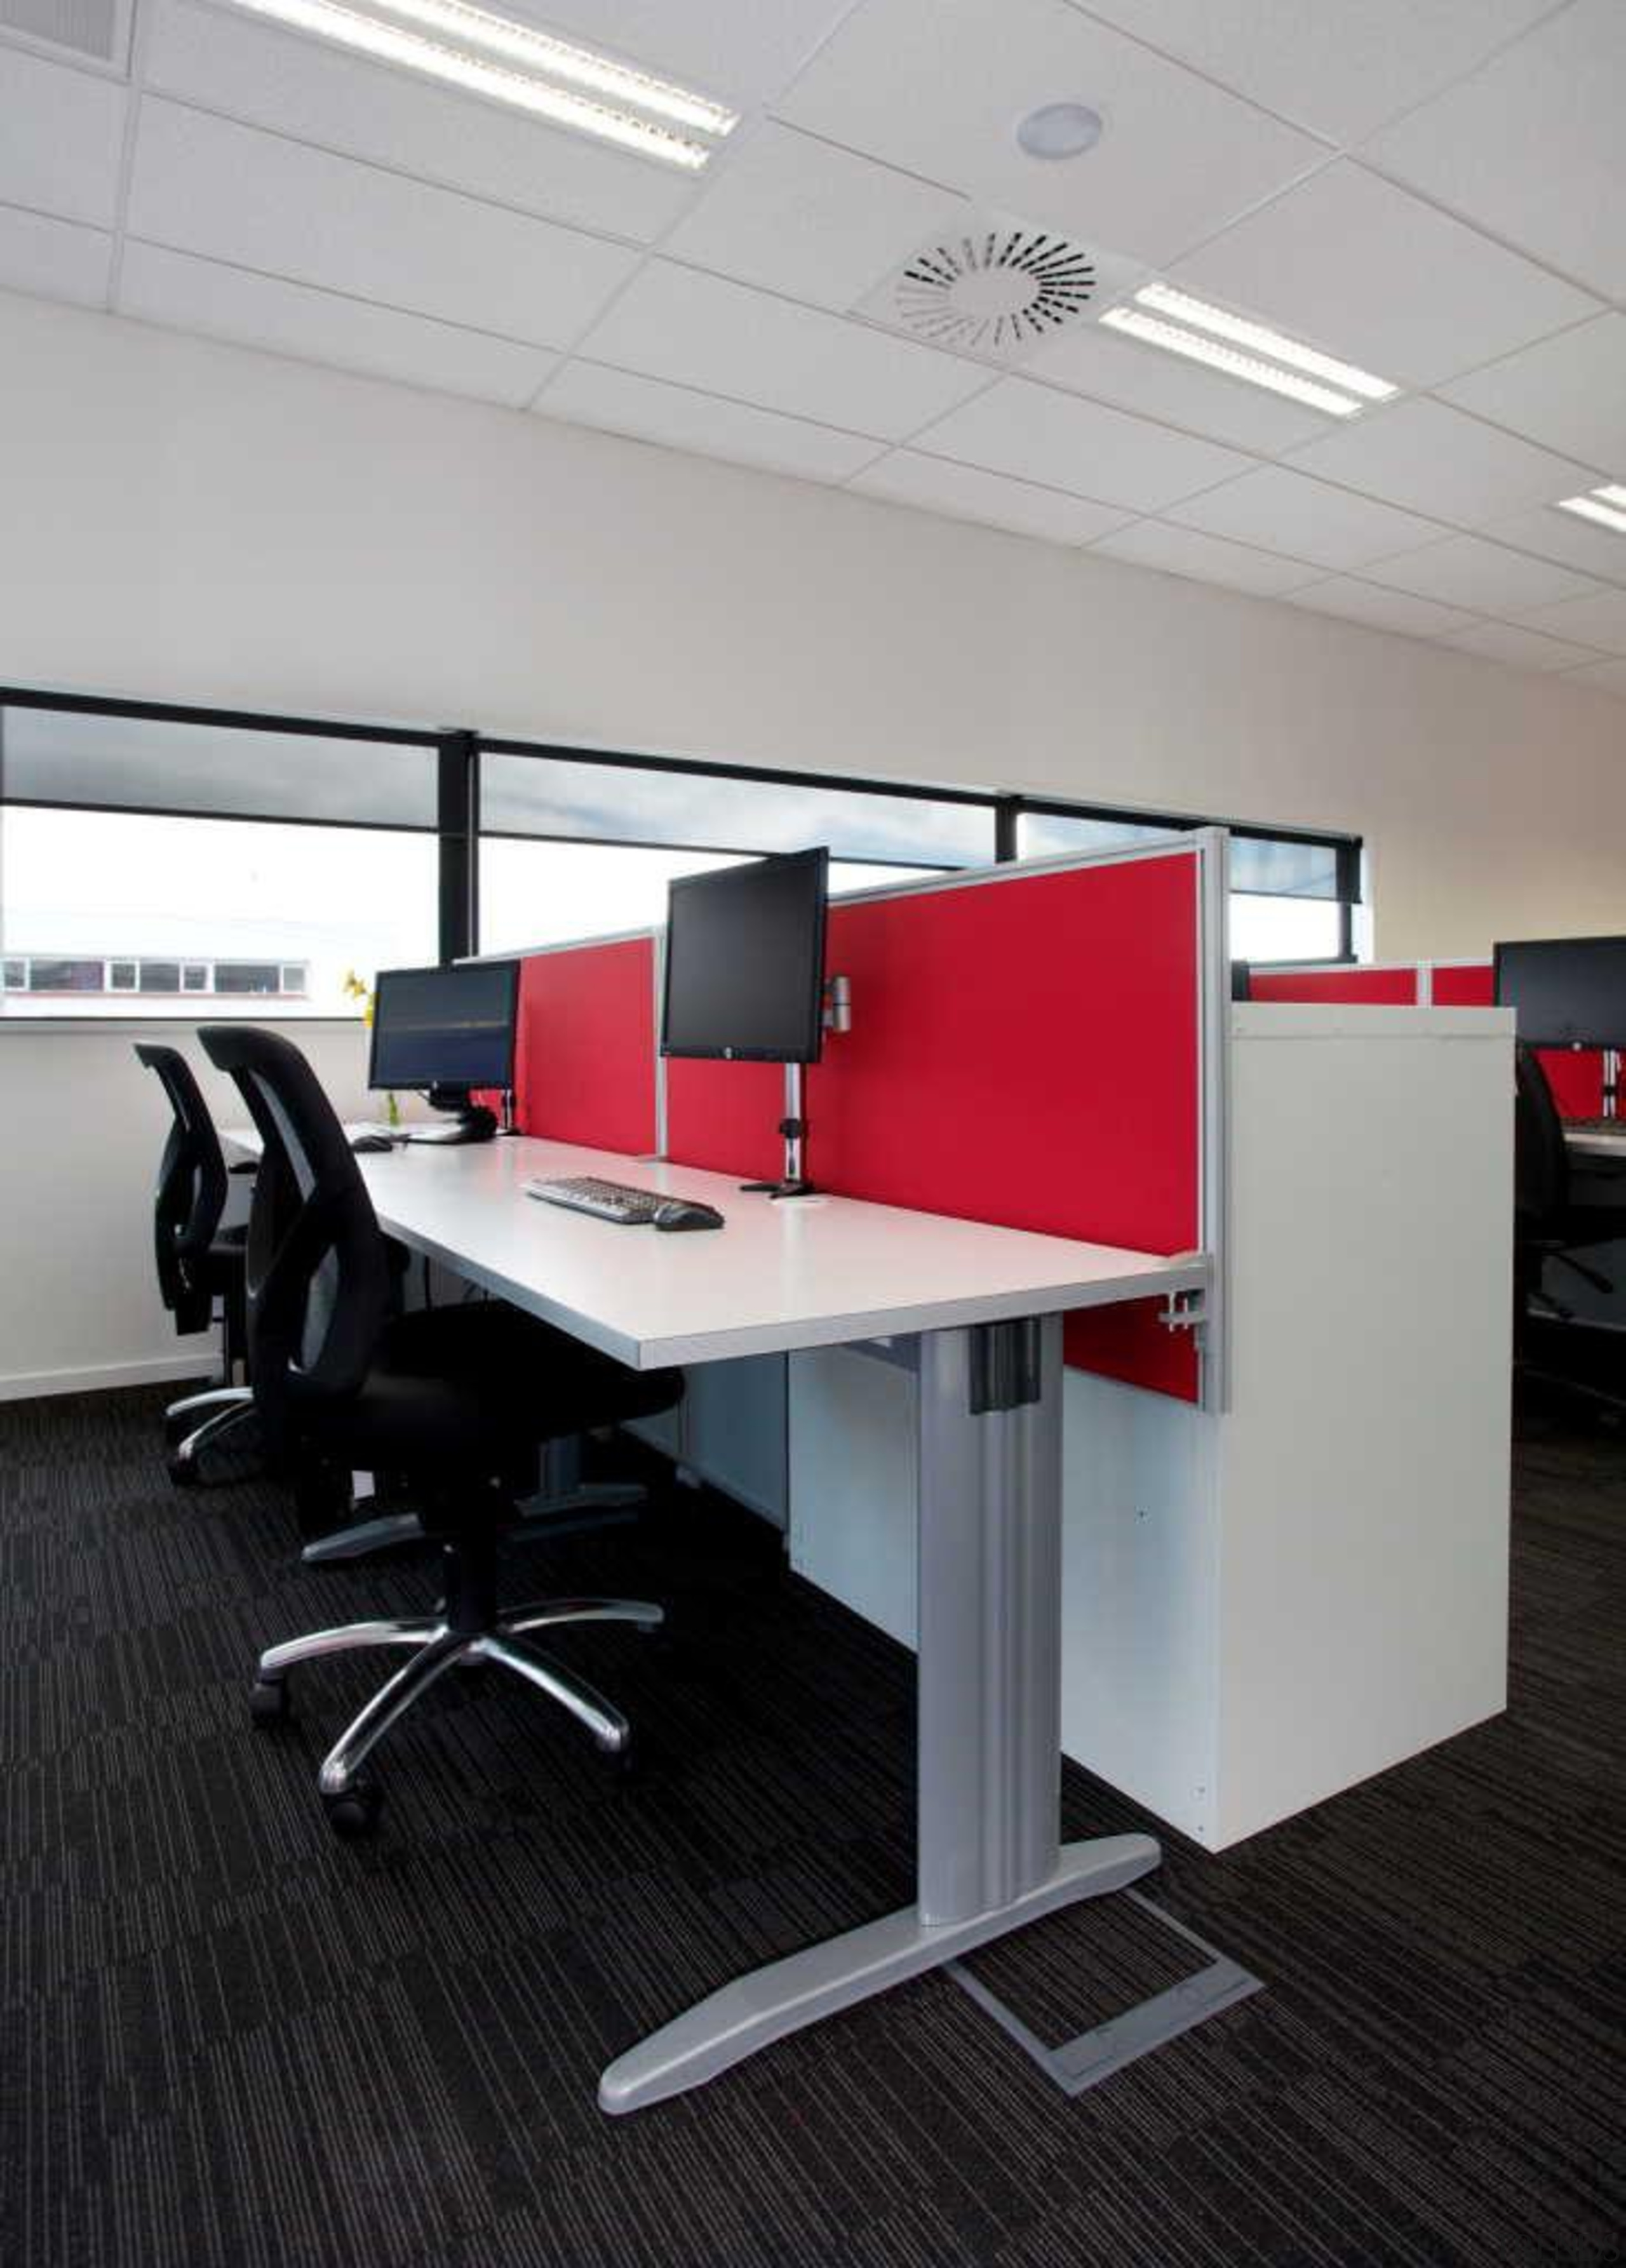 Interiors @ OfficeMax custom designed workstations and supplied angle, desk, floor, furniture, interior design, office, office chair, product design, table, gray, black